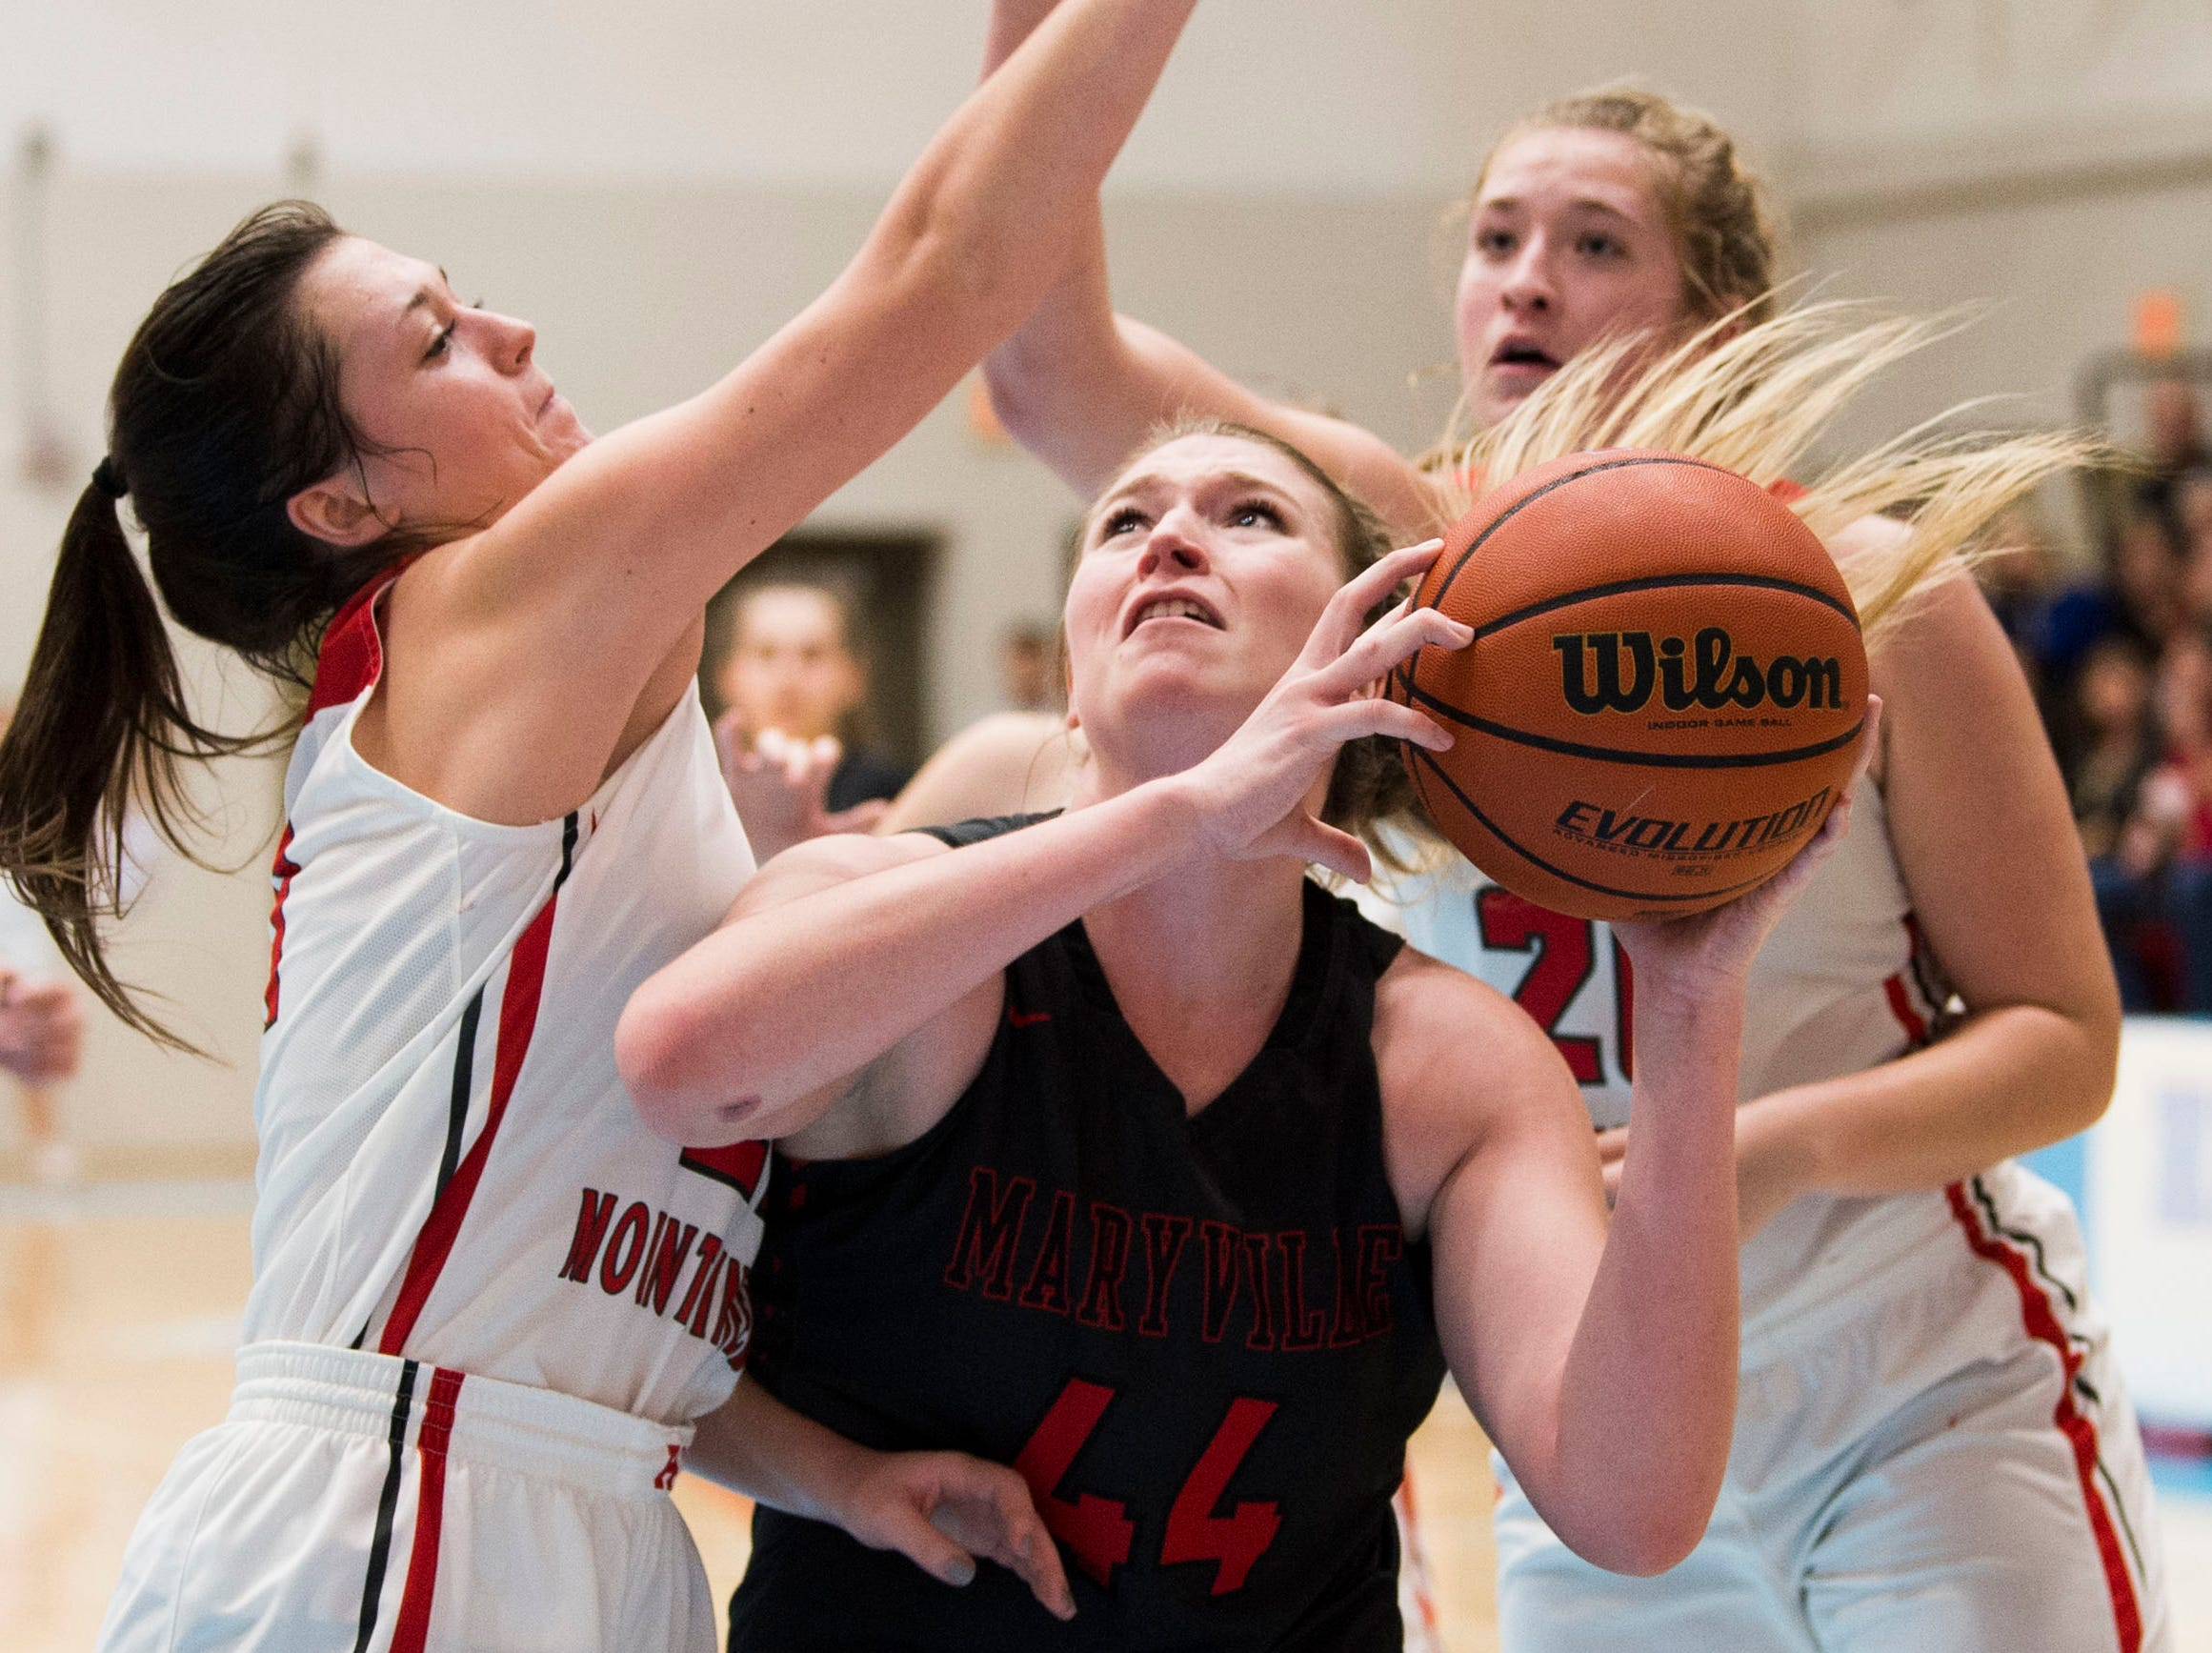 Maryville's Lindsey Taylor (44) attempts a shot during a high school basketball game between Maryville and Heritage at Heritage Friday, Jan. 4, 2019. Both Maryville boys and girls teams beat Heritage.